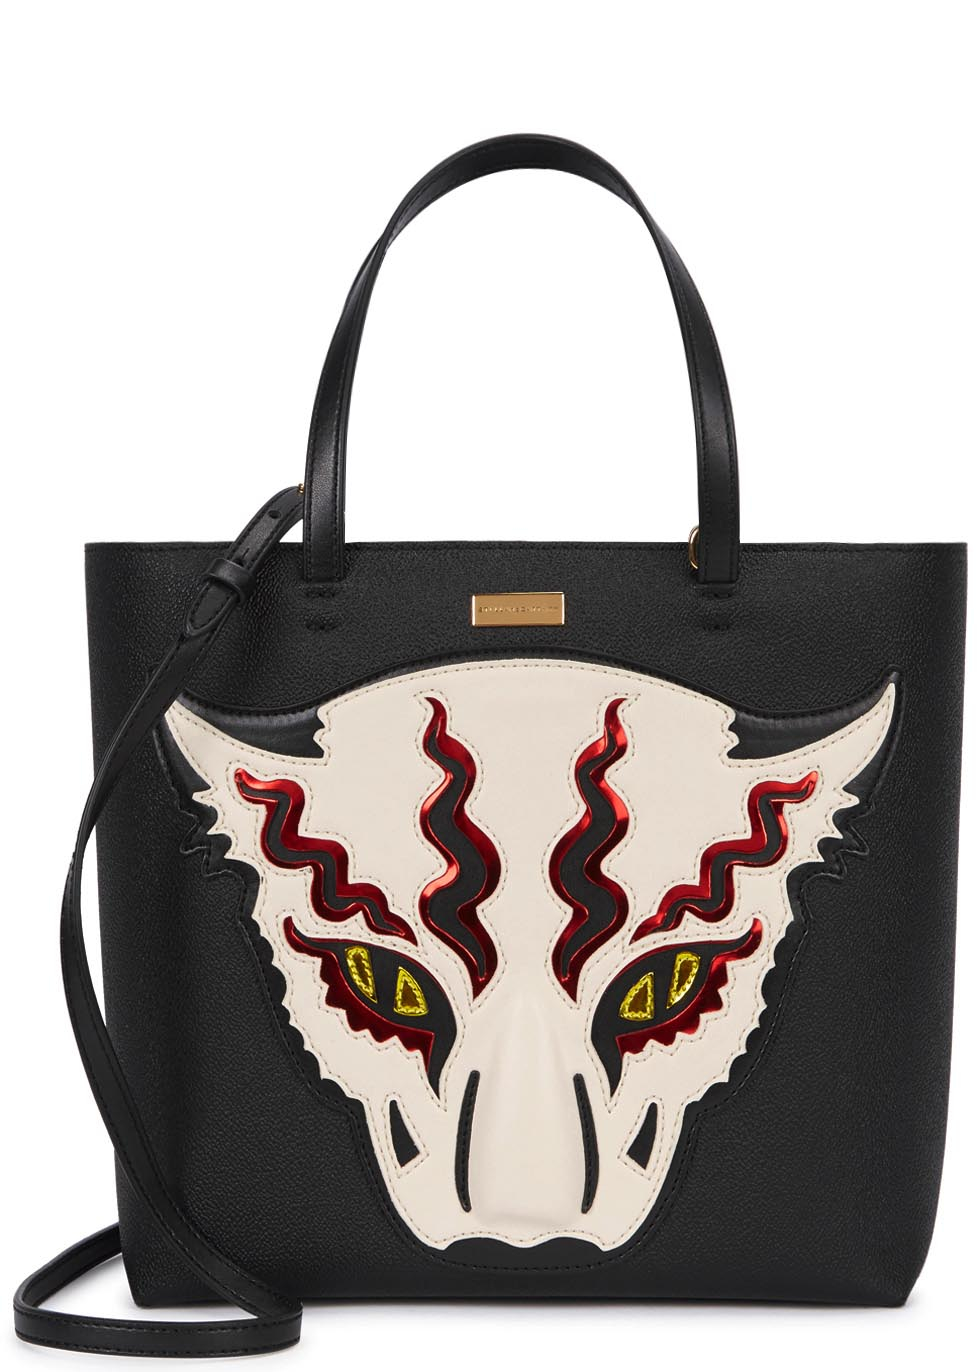 270a96582d91 Stella Mccartney Wild Cat Appliqué Tote in Black - Lyst